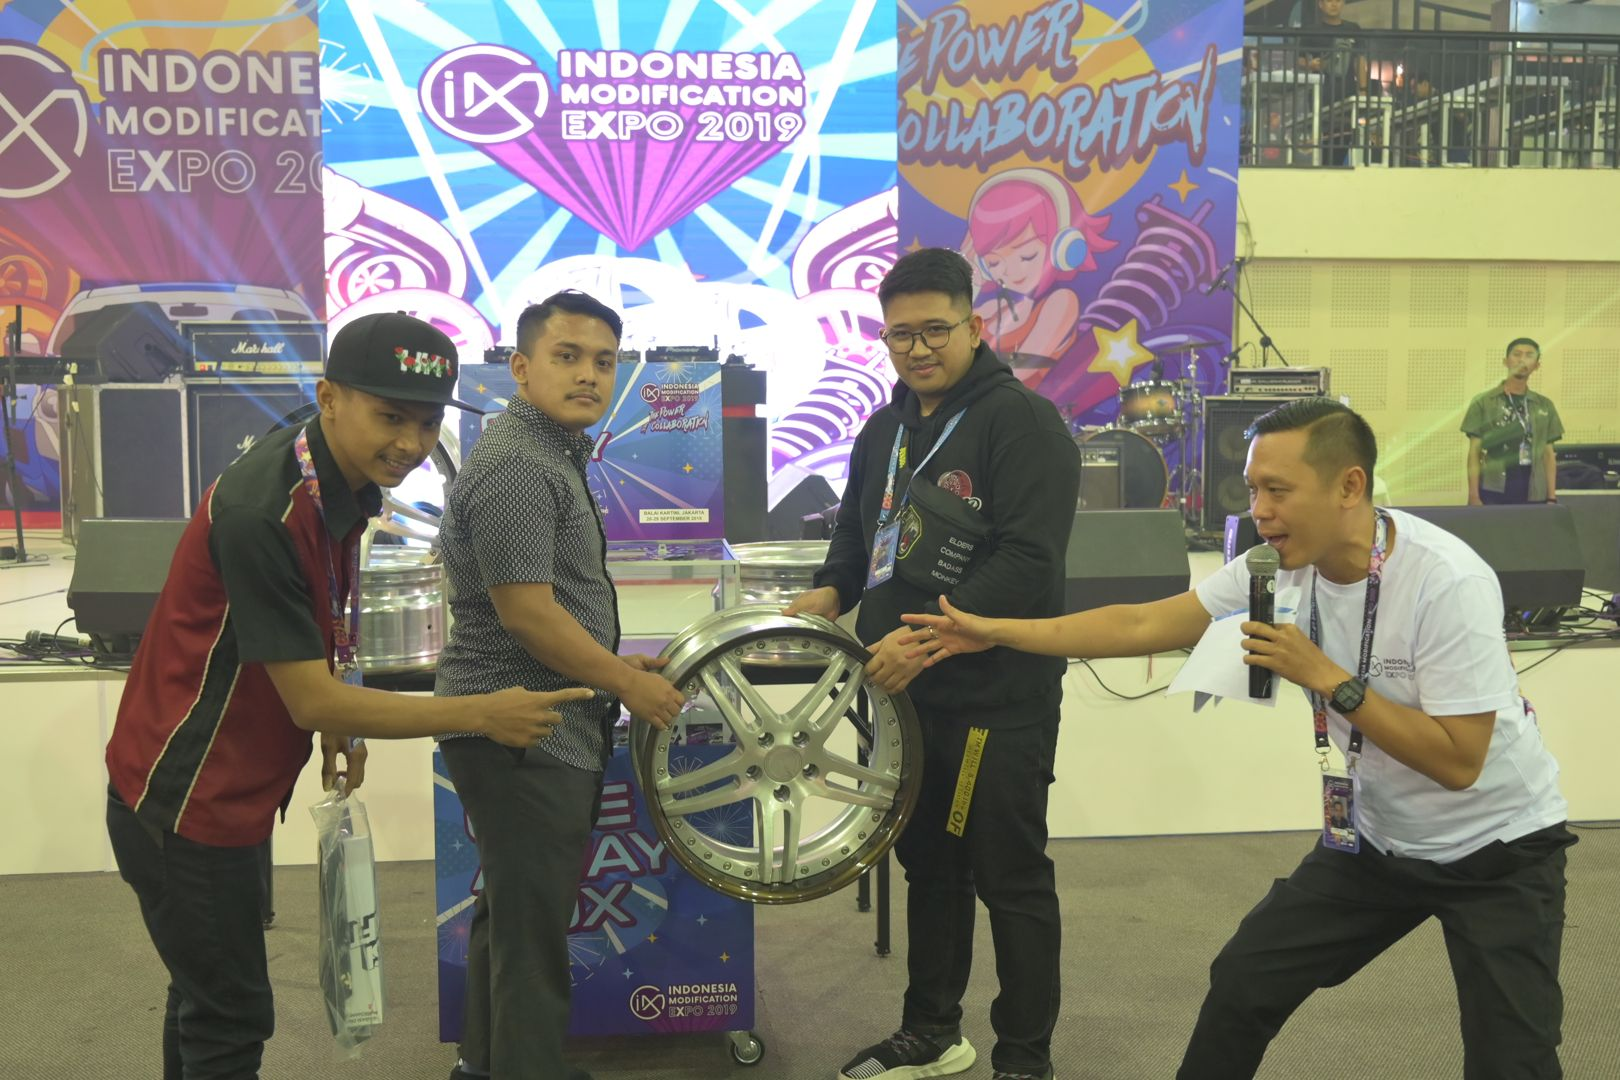 Imx - Indonesia modification expo giveaway 2019 (8)